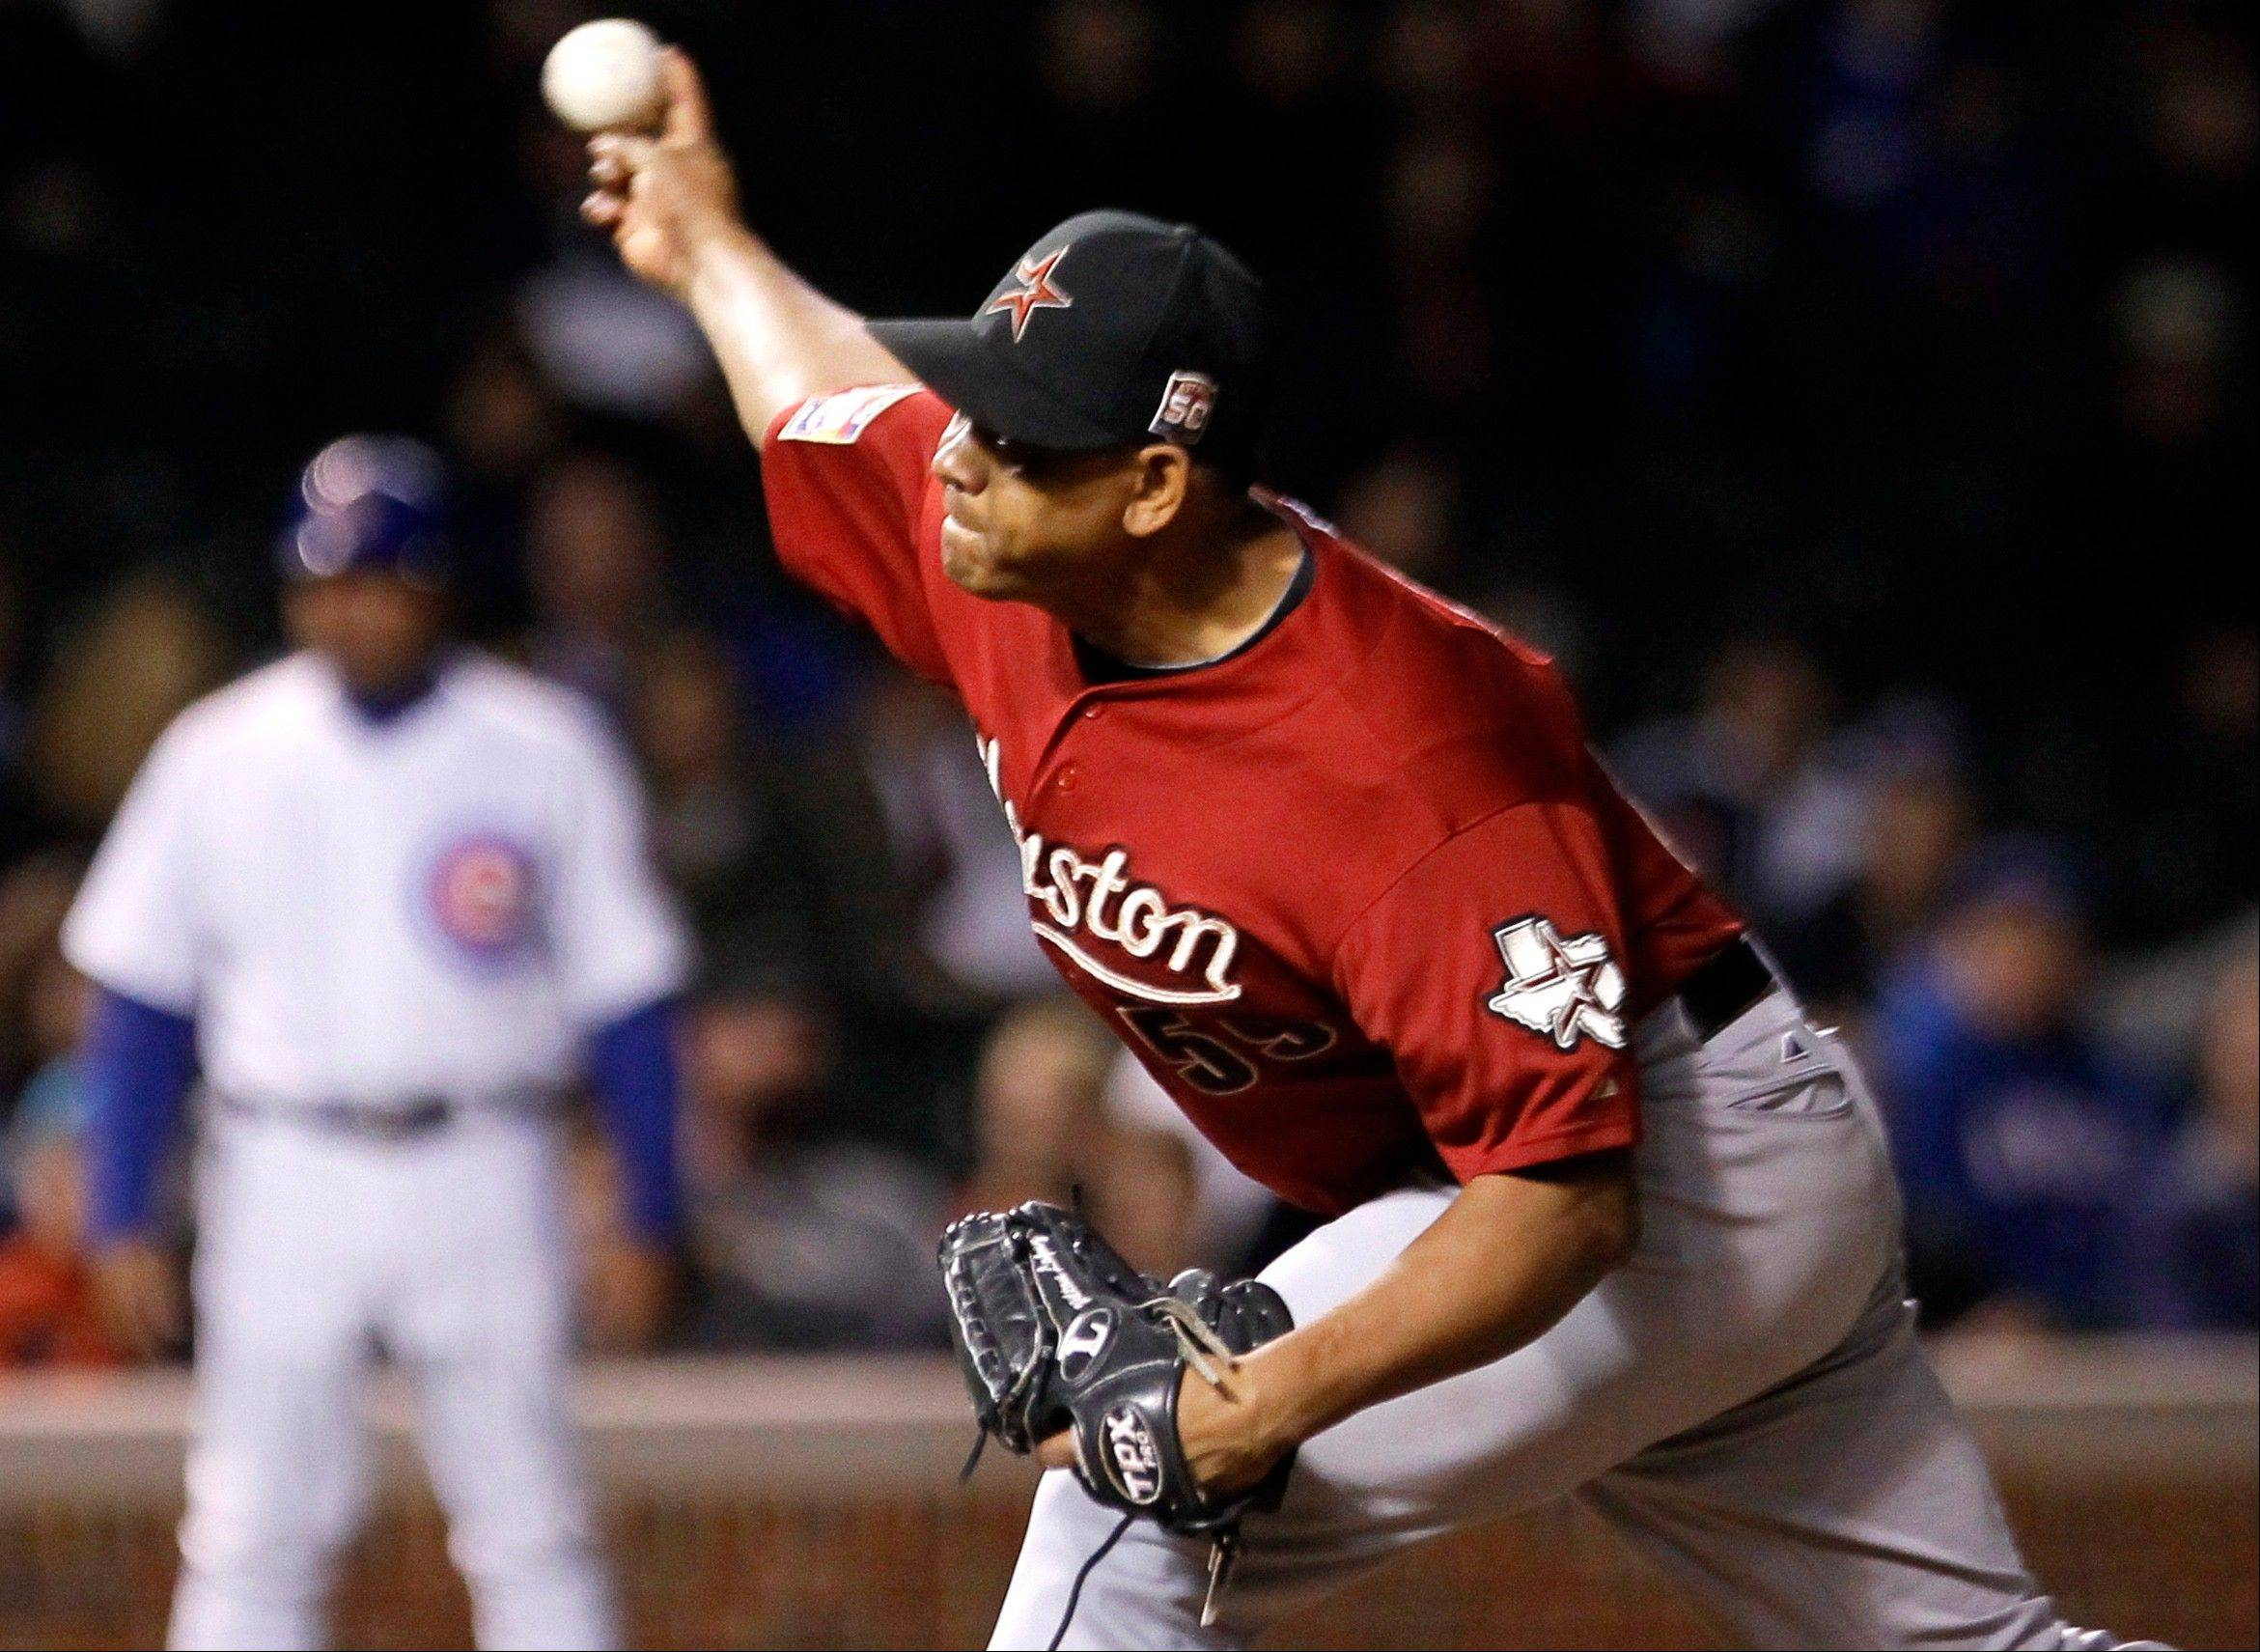 Houston Astros relief pitcher Wilton Lopez delivers during the ninth inning of a baseball game against the Chicago Cubs, Tuesday, Oct. 2, 2012, in Chicago. The Astros won 3-0. (AP Photo/Charles Rex Arbogast)